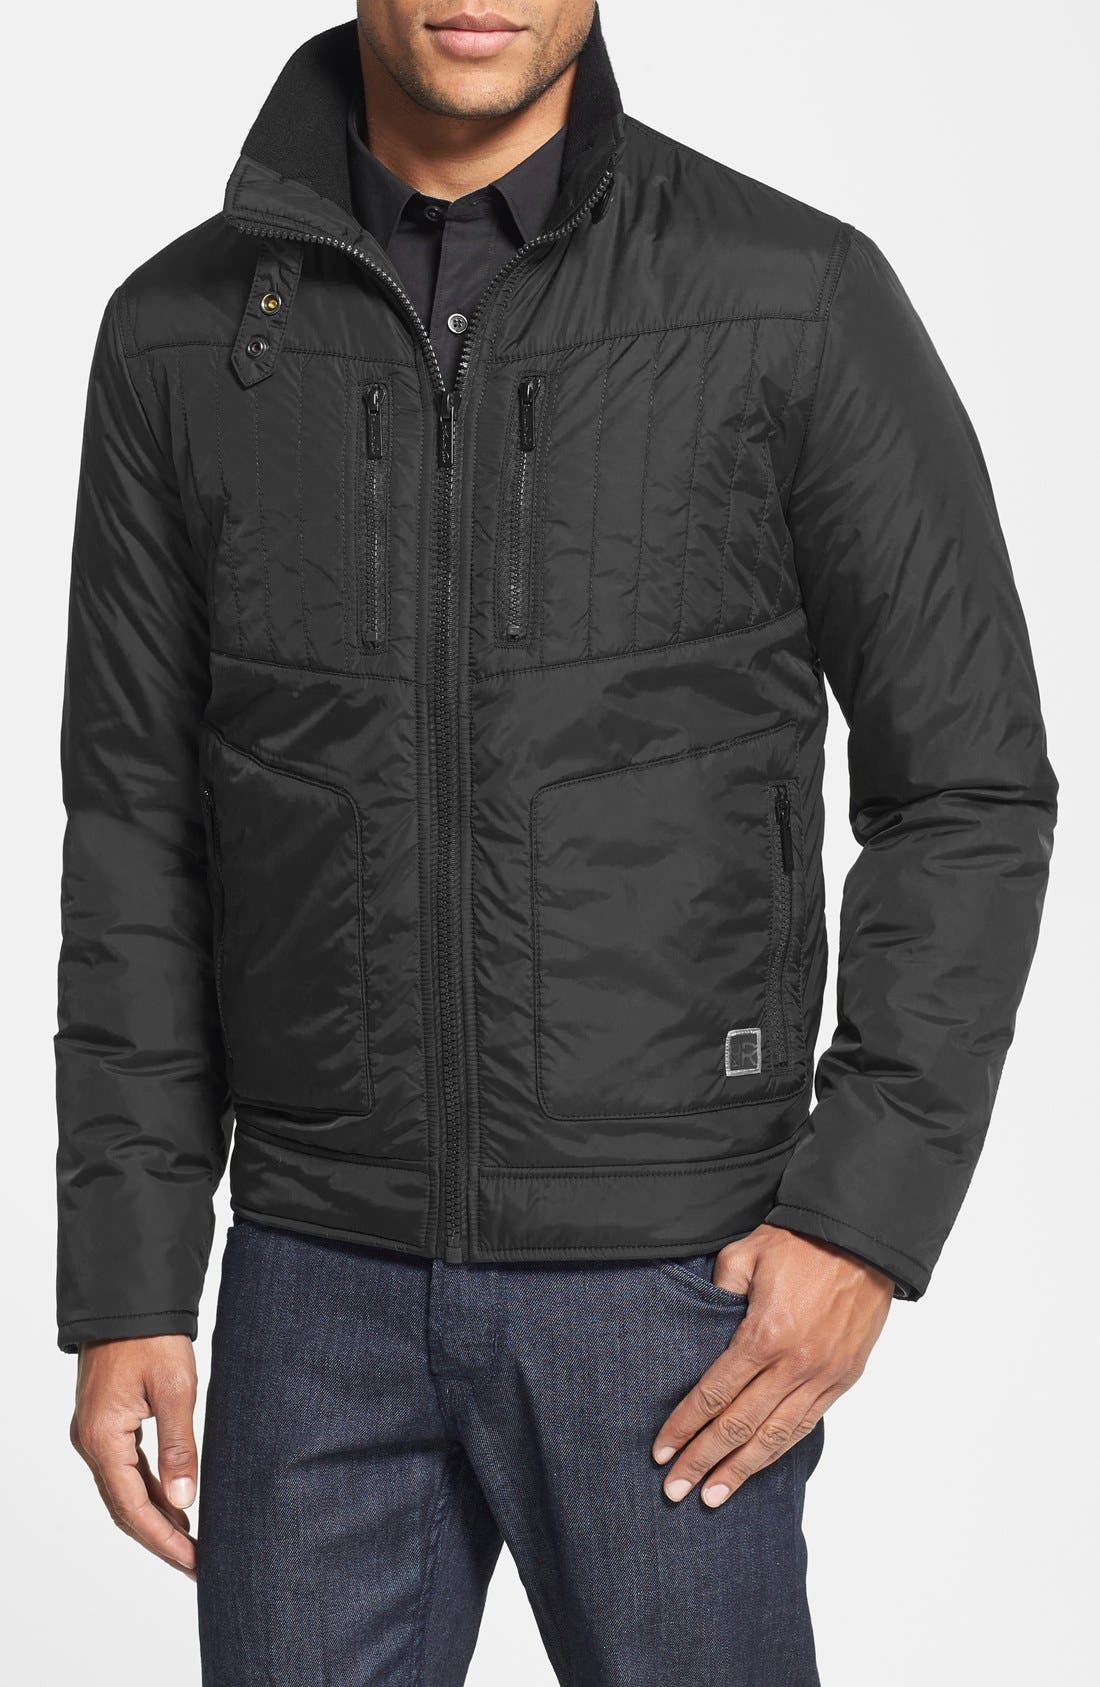 Alternate Image 1 Selected - Kenneth Cole Reaction Waterproof Packable Quilted Bomber Jacket (Online Only)